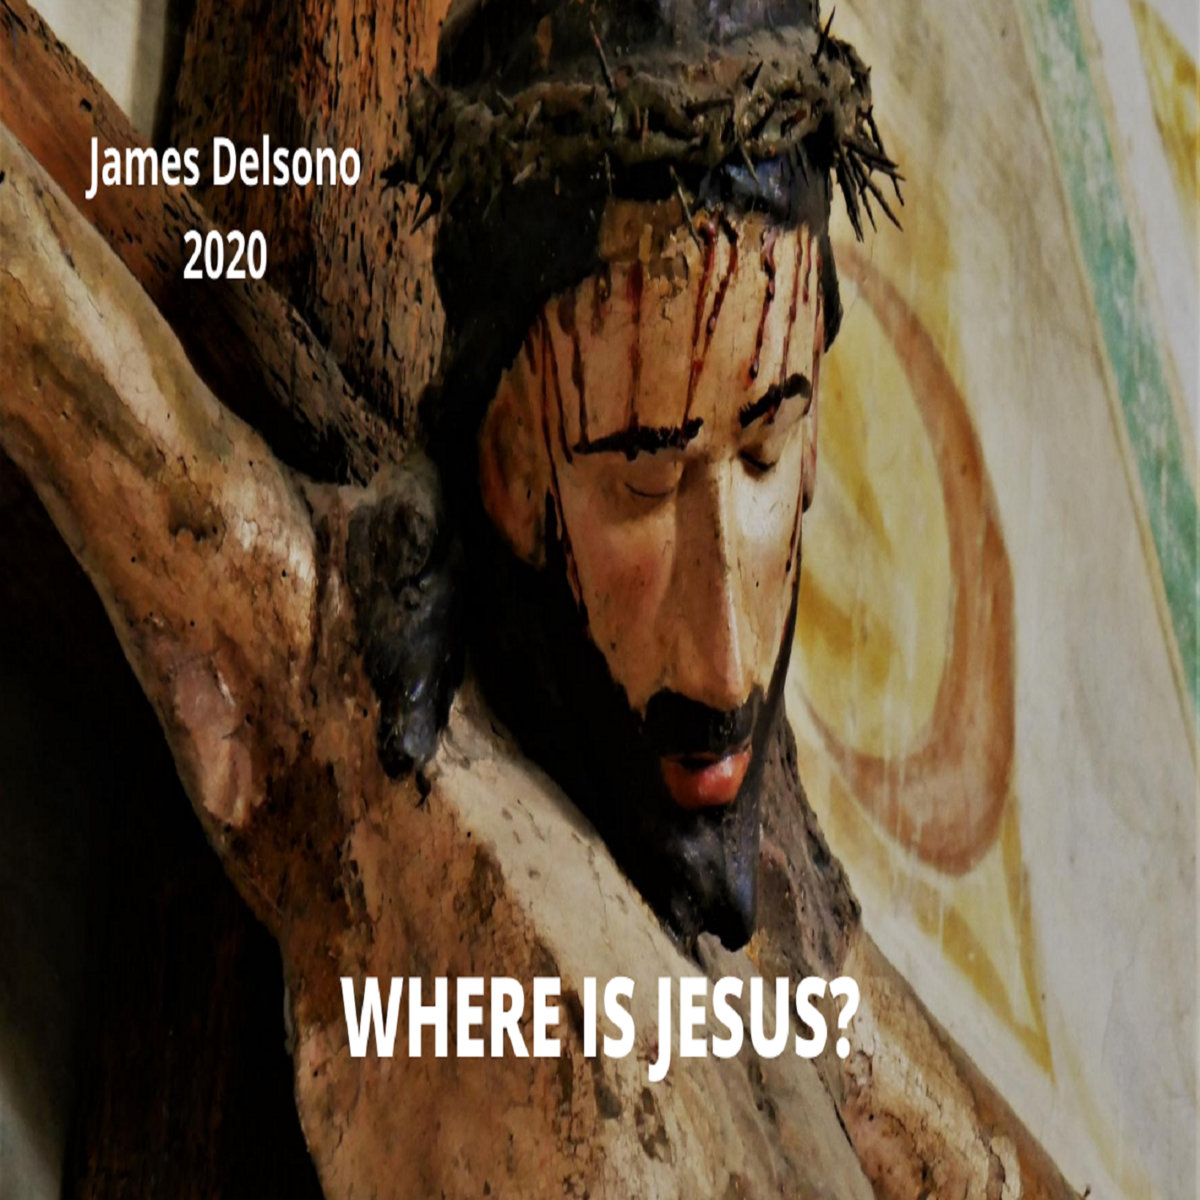 Where is Jesus? by James Delsono